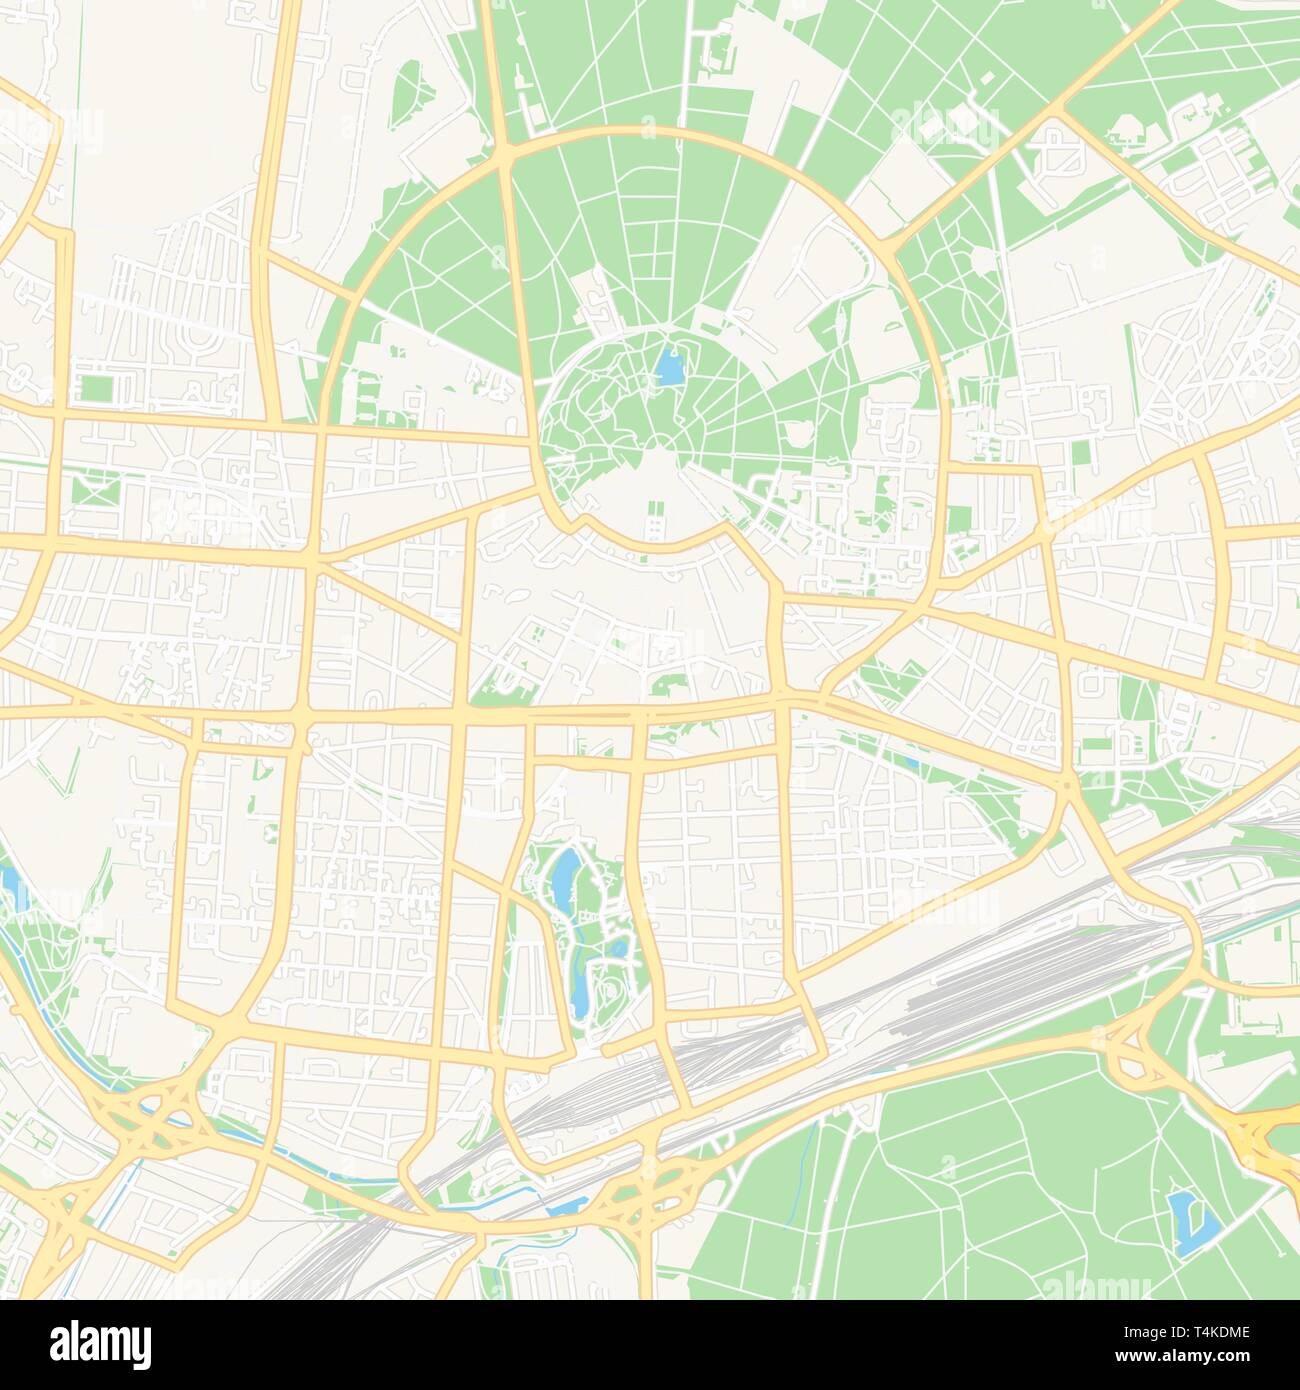 Karlsruhe Map Of Germany.Printable Map Of Karlsruhe Germany With Main And Secondary Roads